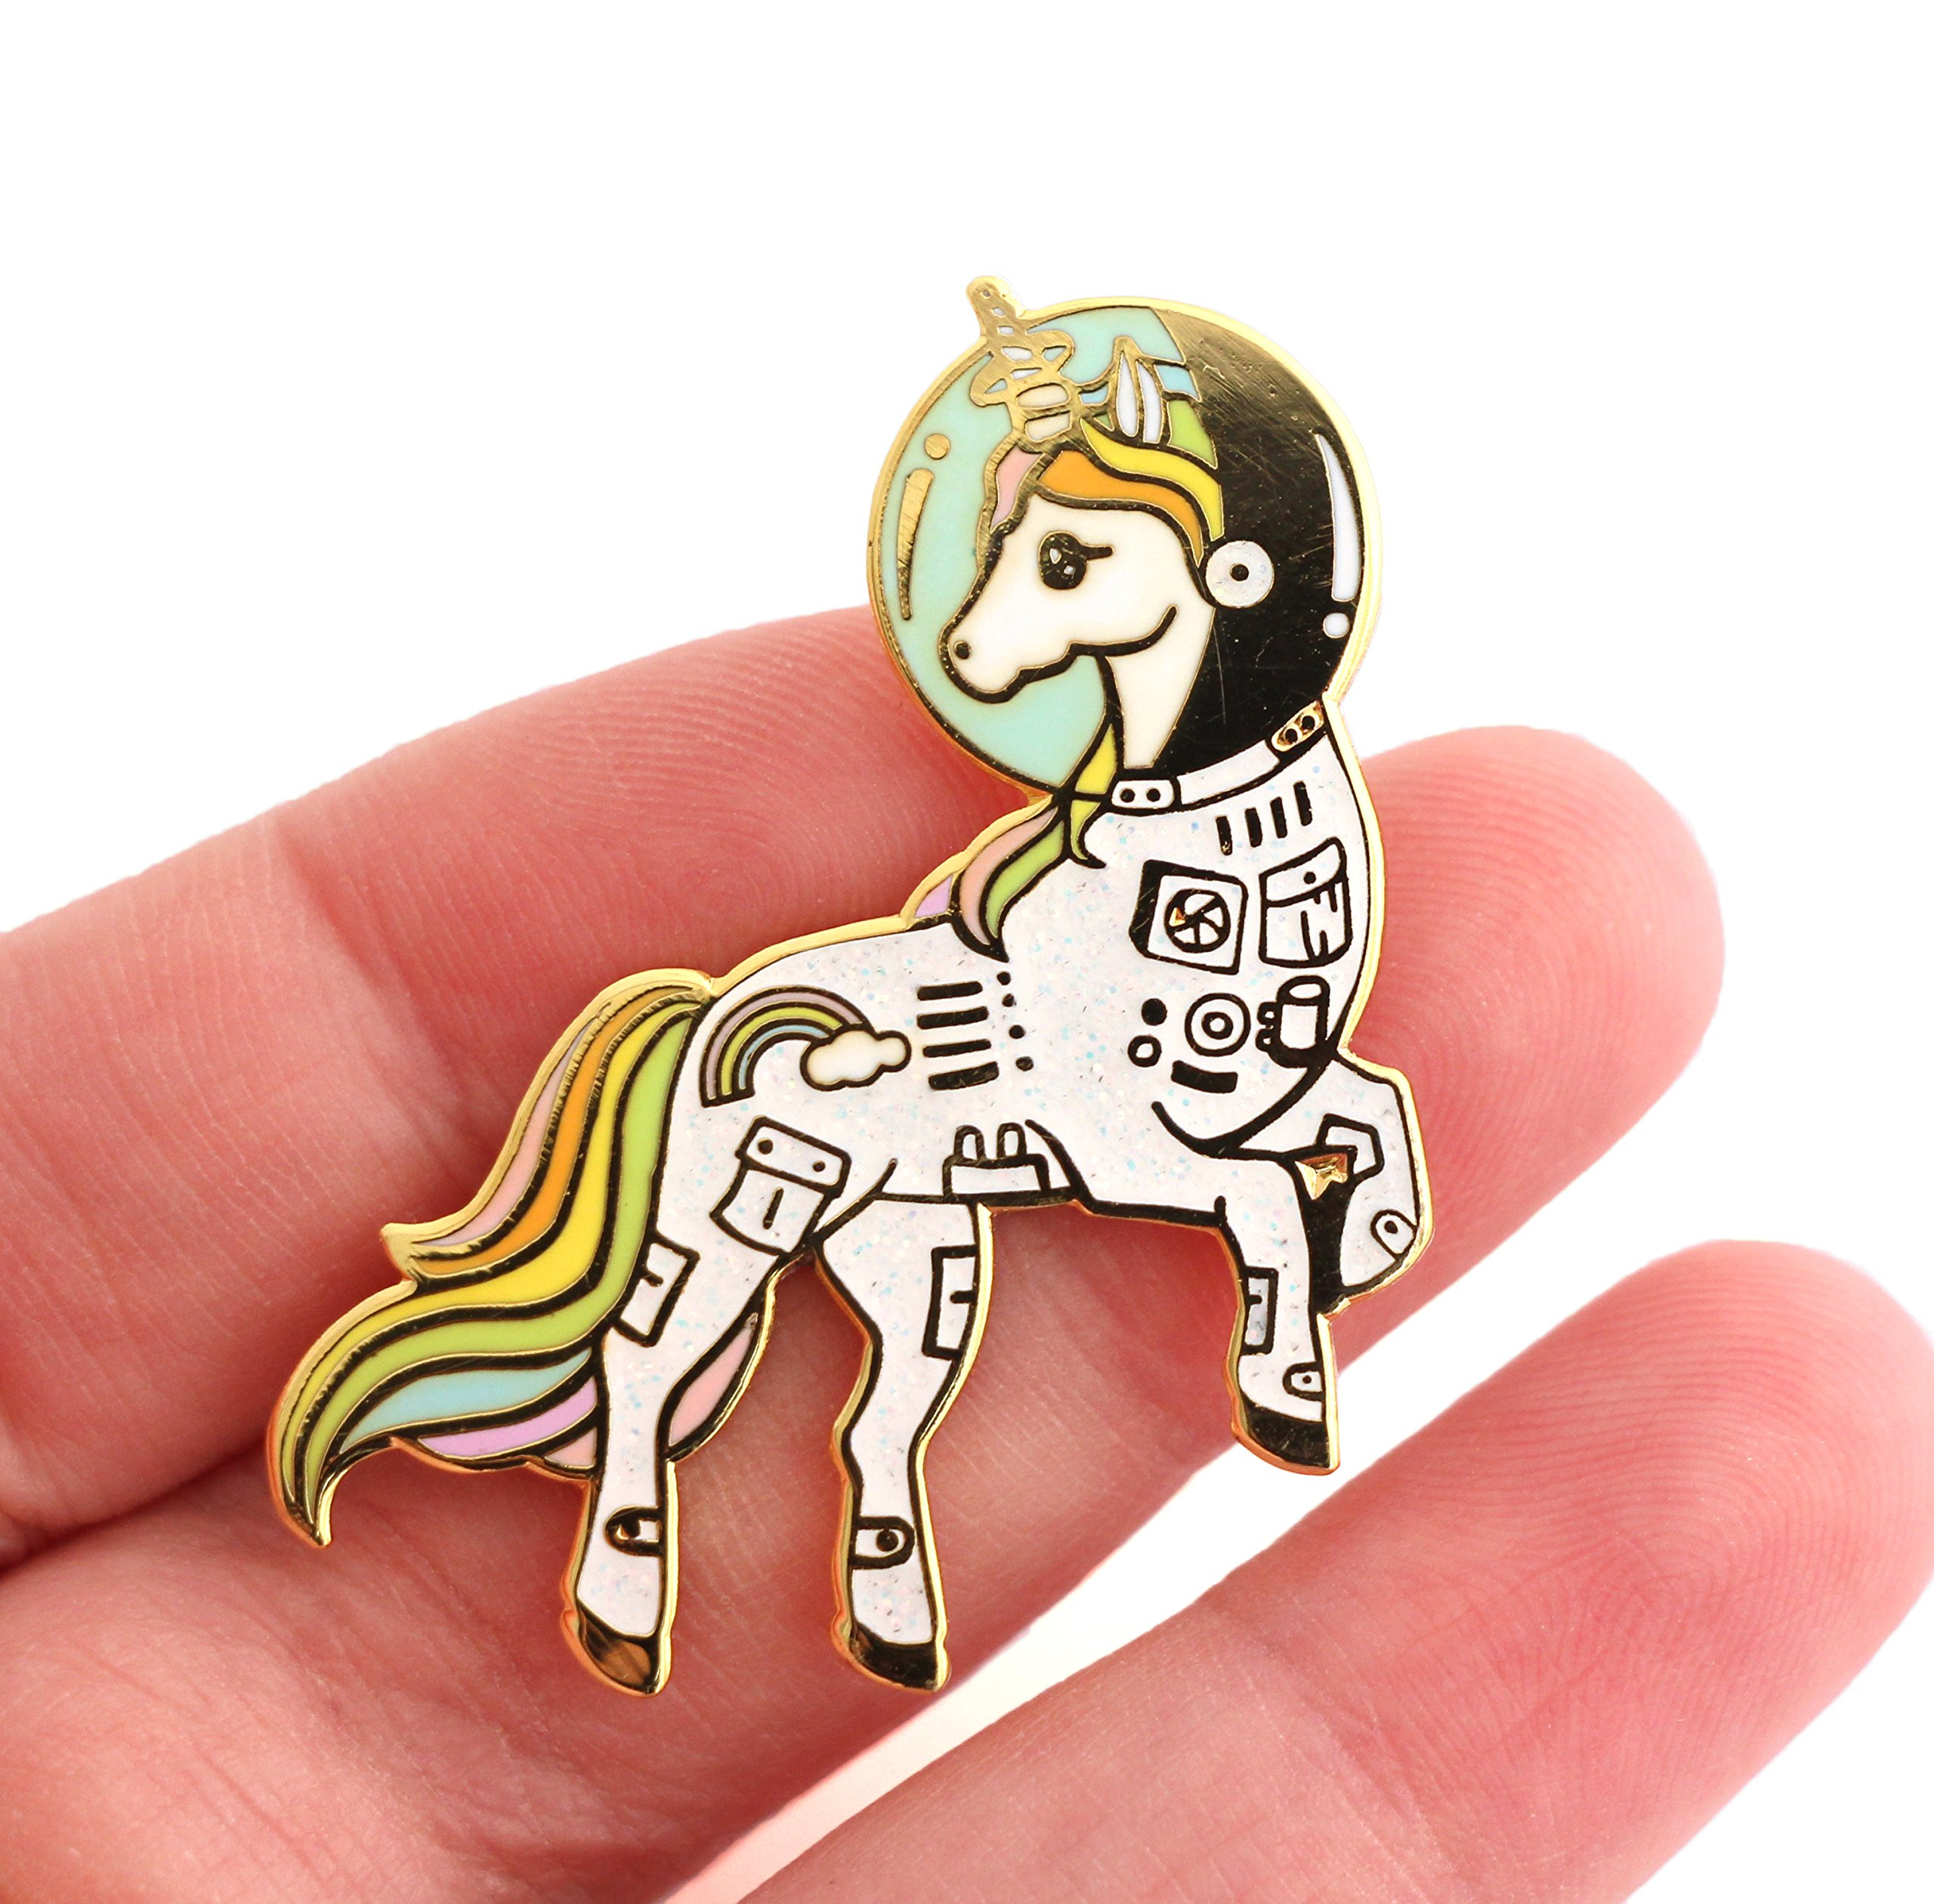 Unicorn Enamel Pin Astronaut Space Unicorn In a Suit Colorful Lapel Pin 4